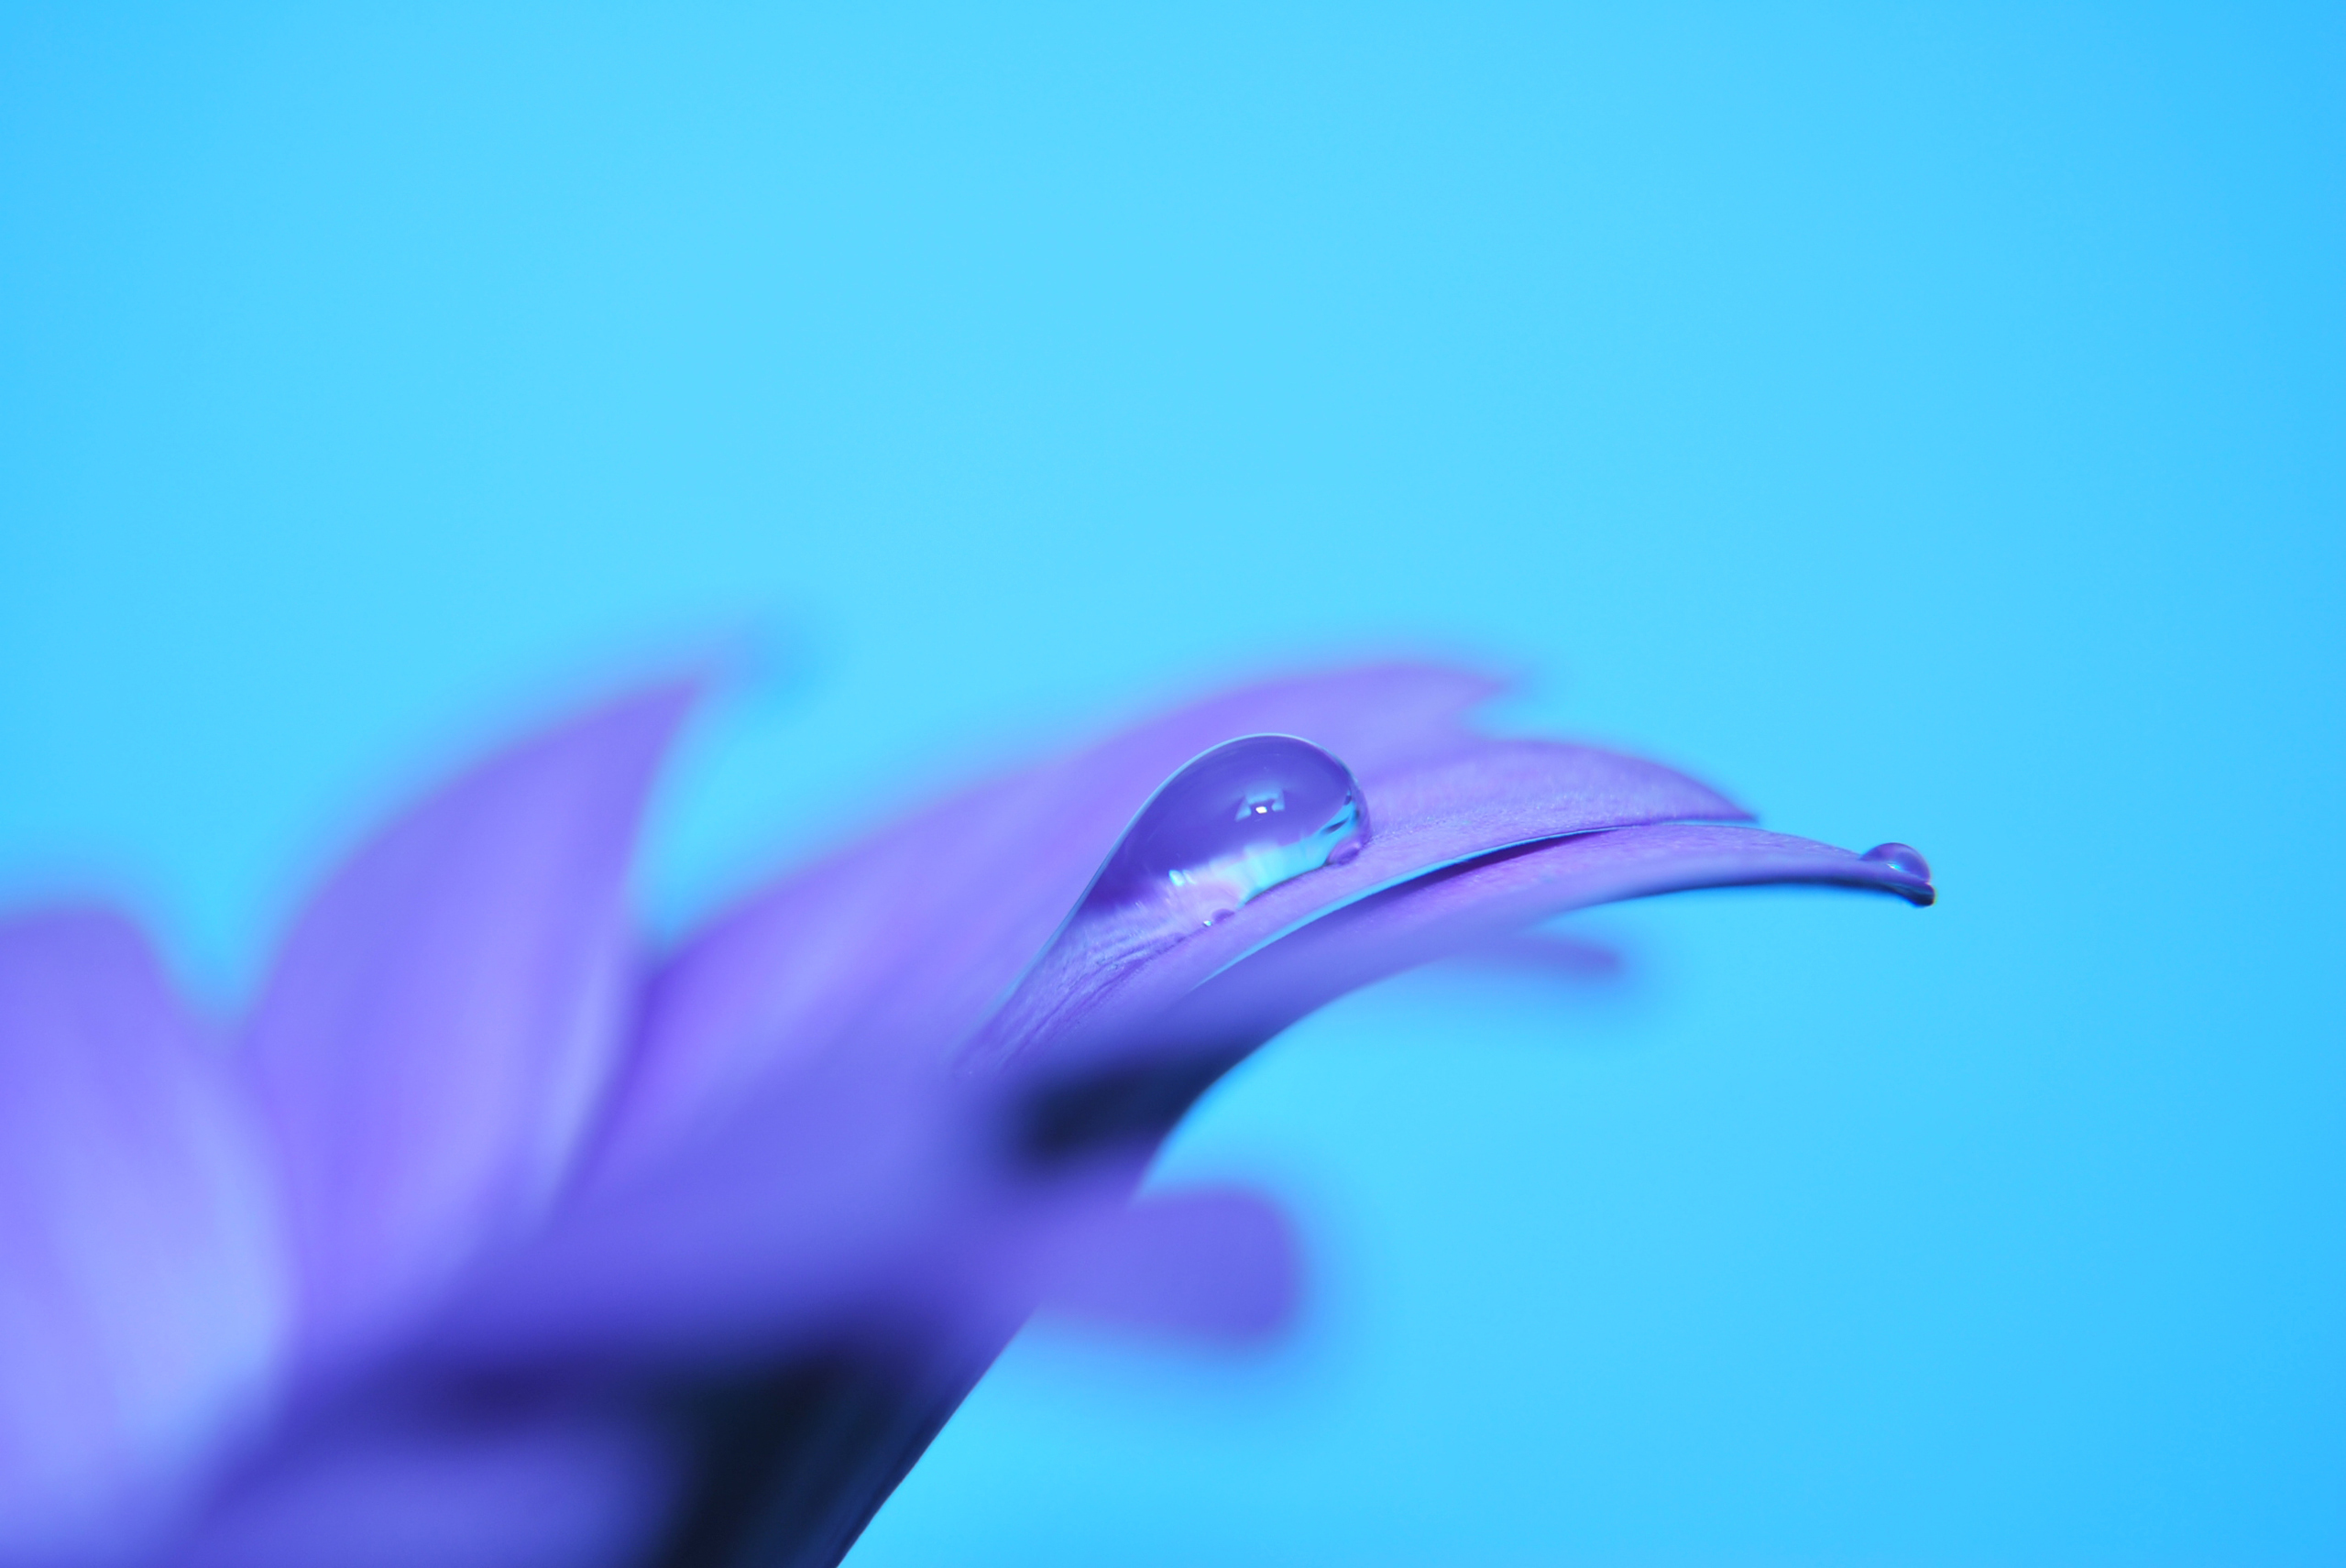 Image: Flower, lilac, purple, drop, blue background